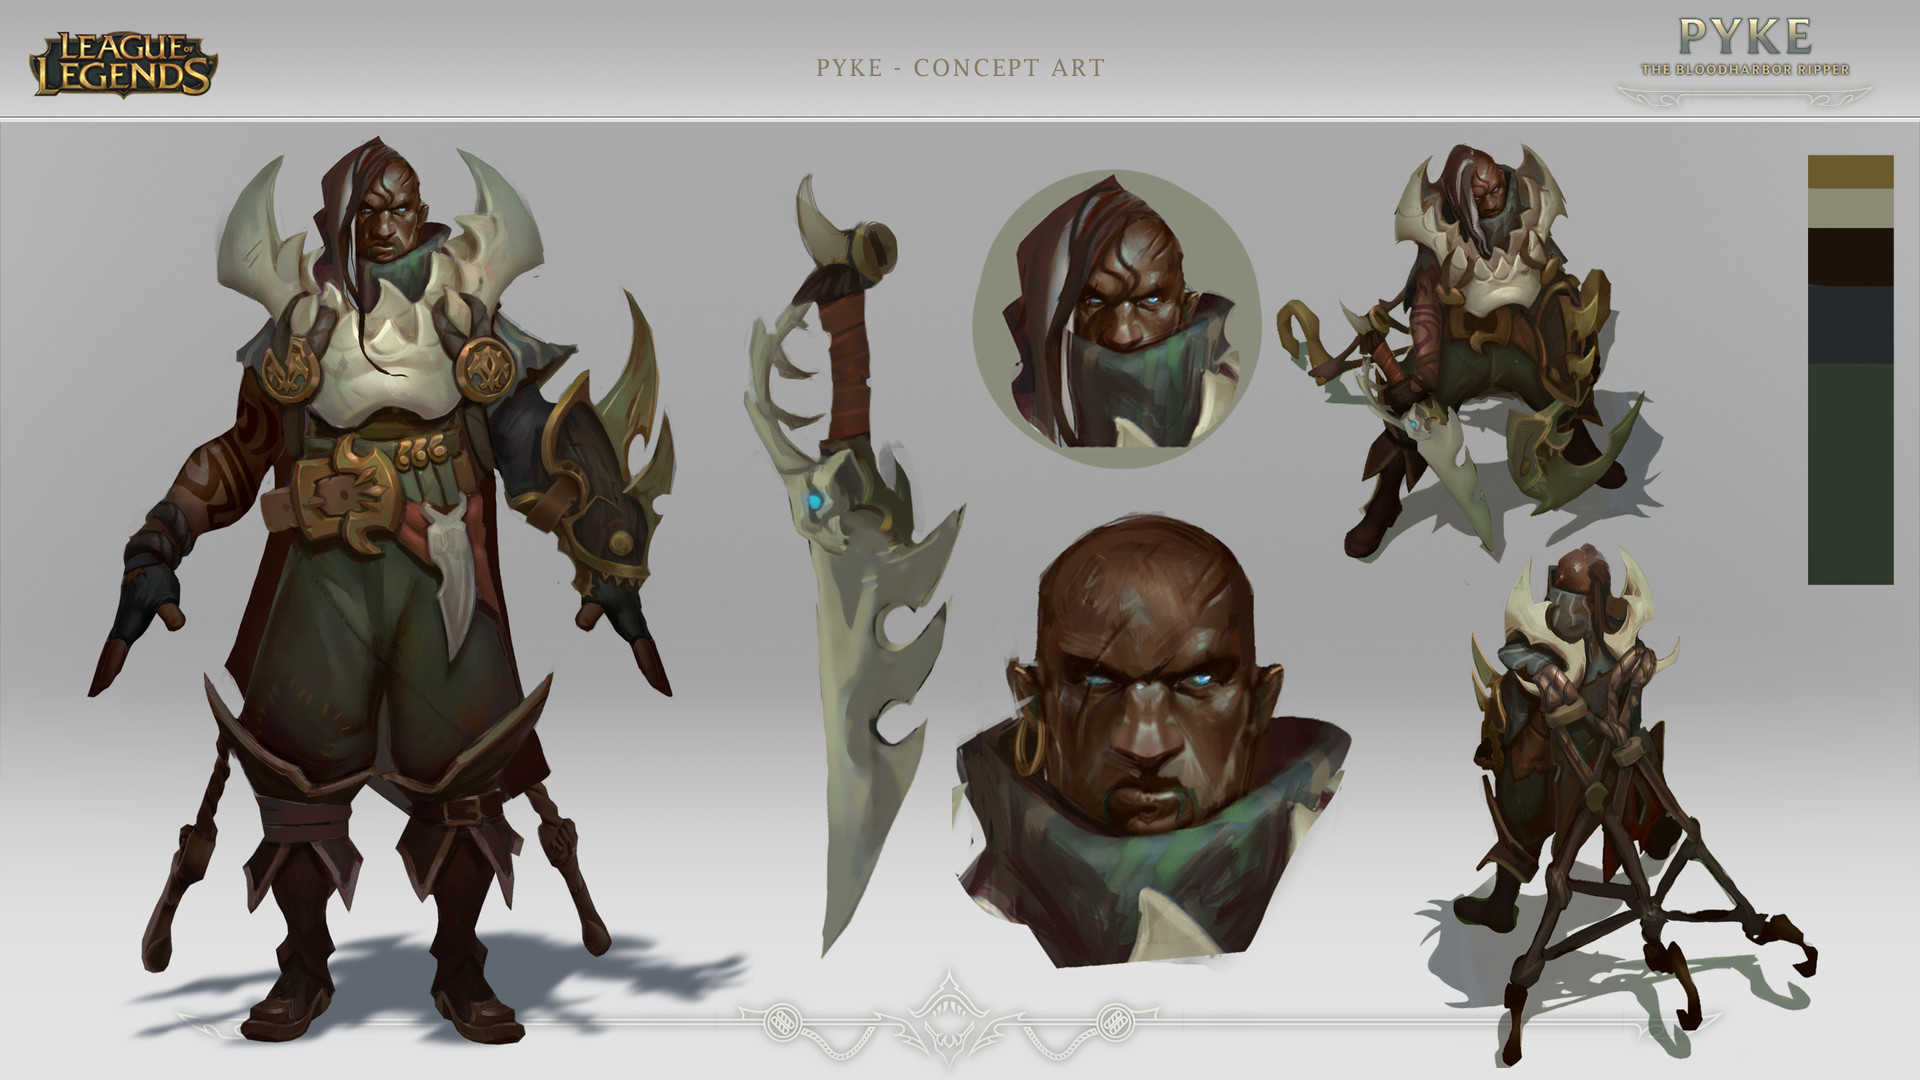 Pyke exploration  design